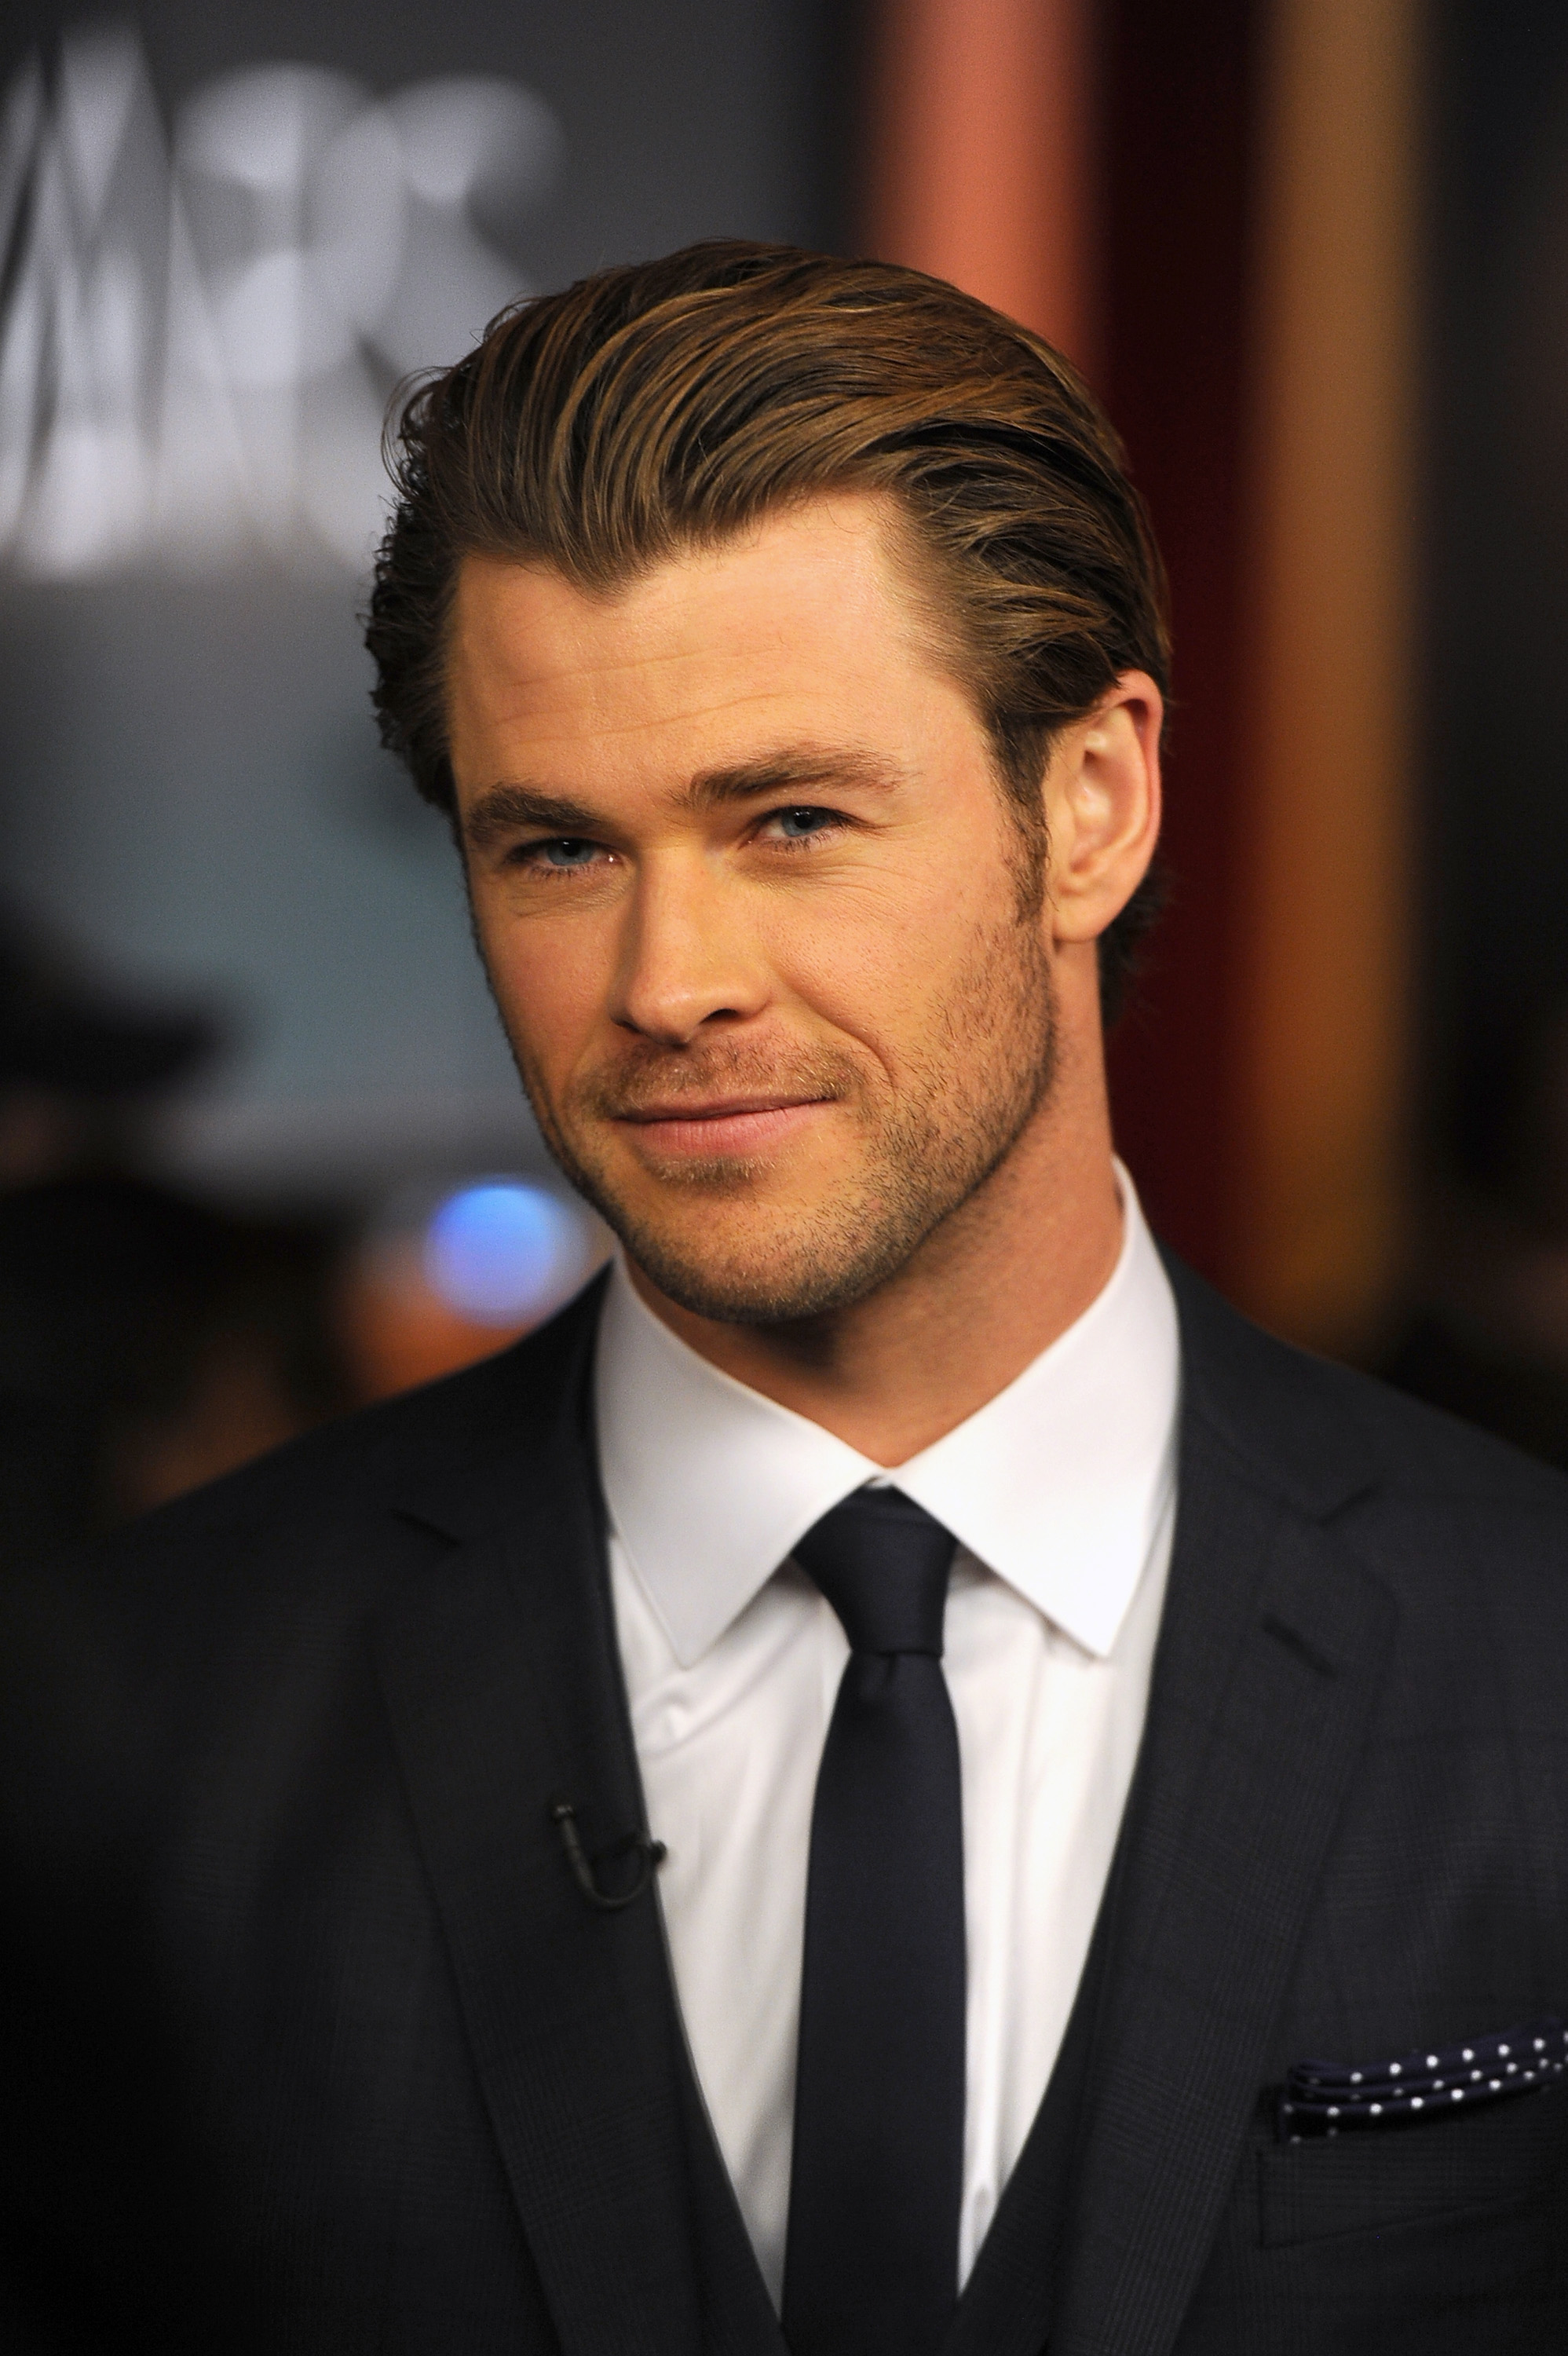 Only Chris Hemsworth c...